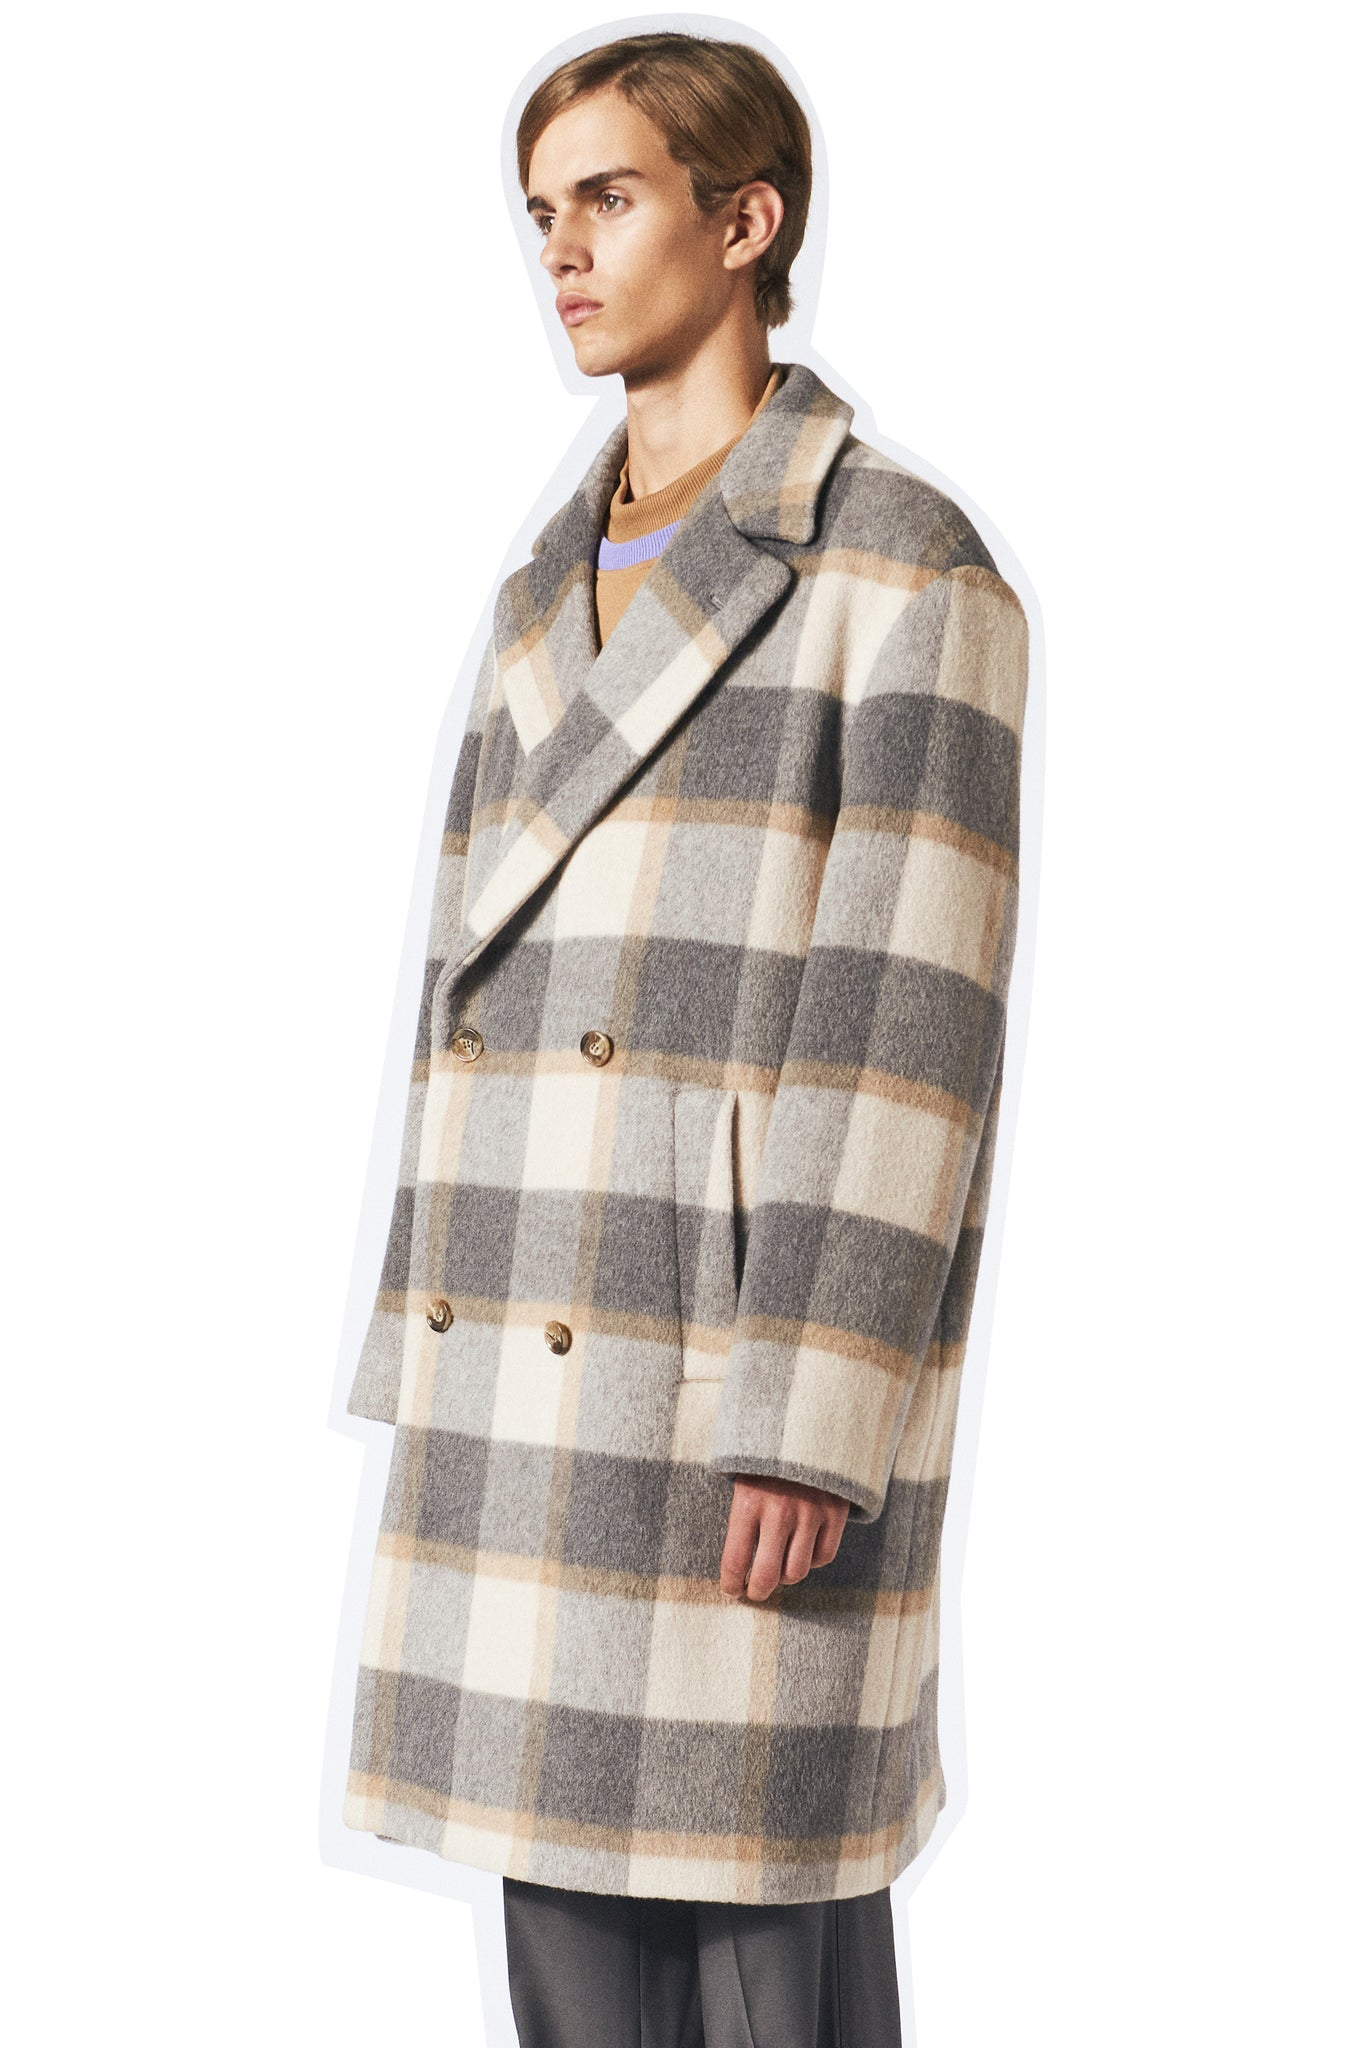 keith coat from Martin Asbjorn grey and sand check